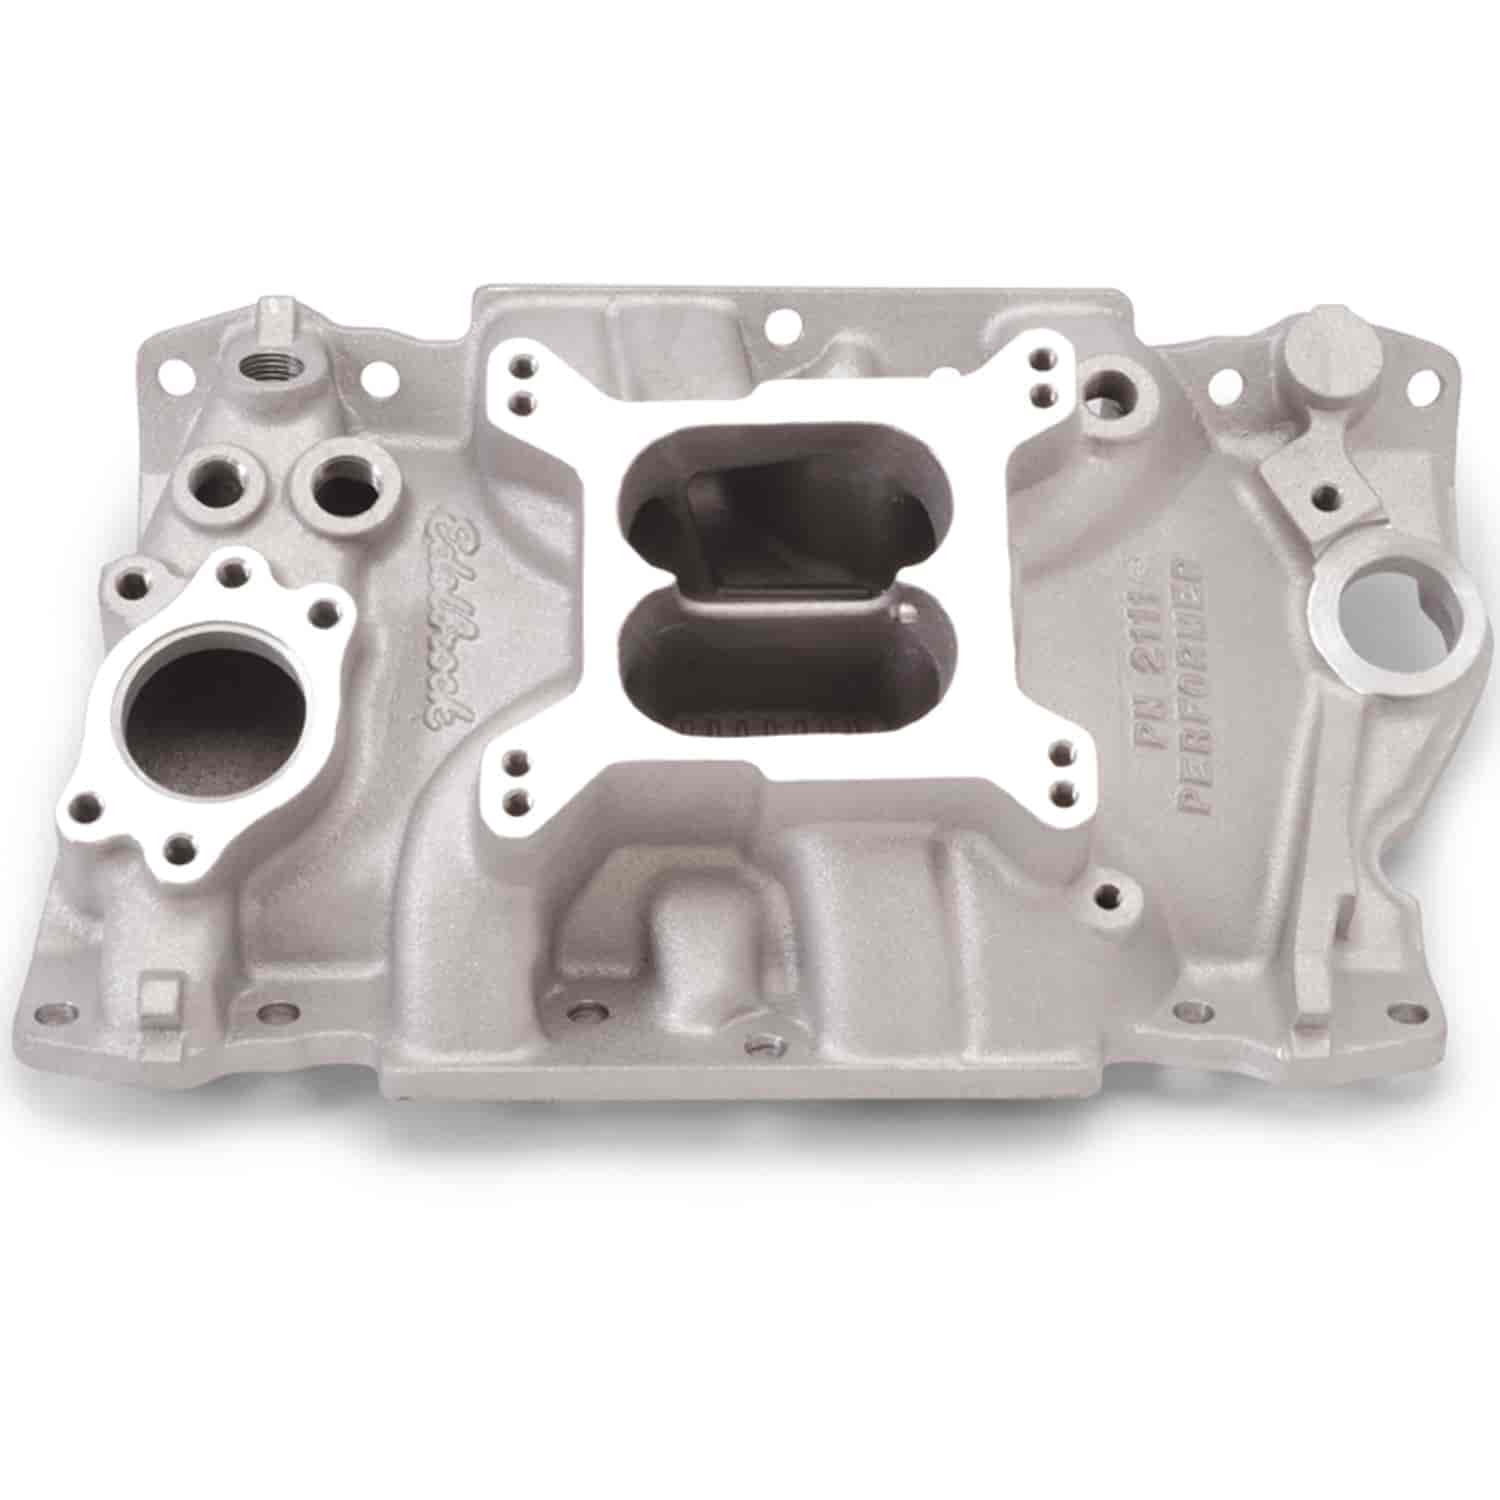 Edelbrock 2111 - Edelbrock Performer Intake Manifolds for Chevy